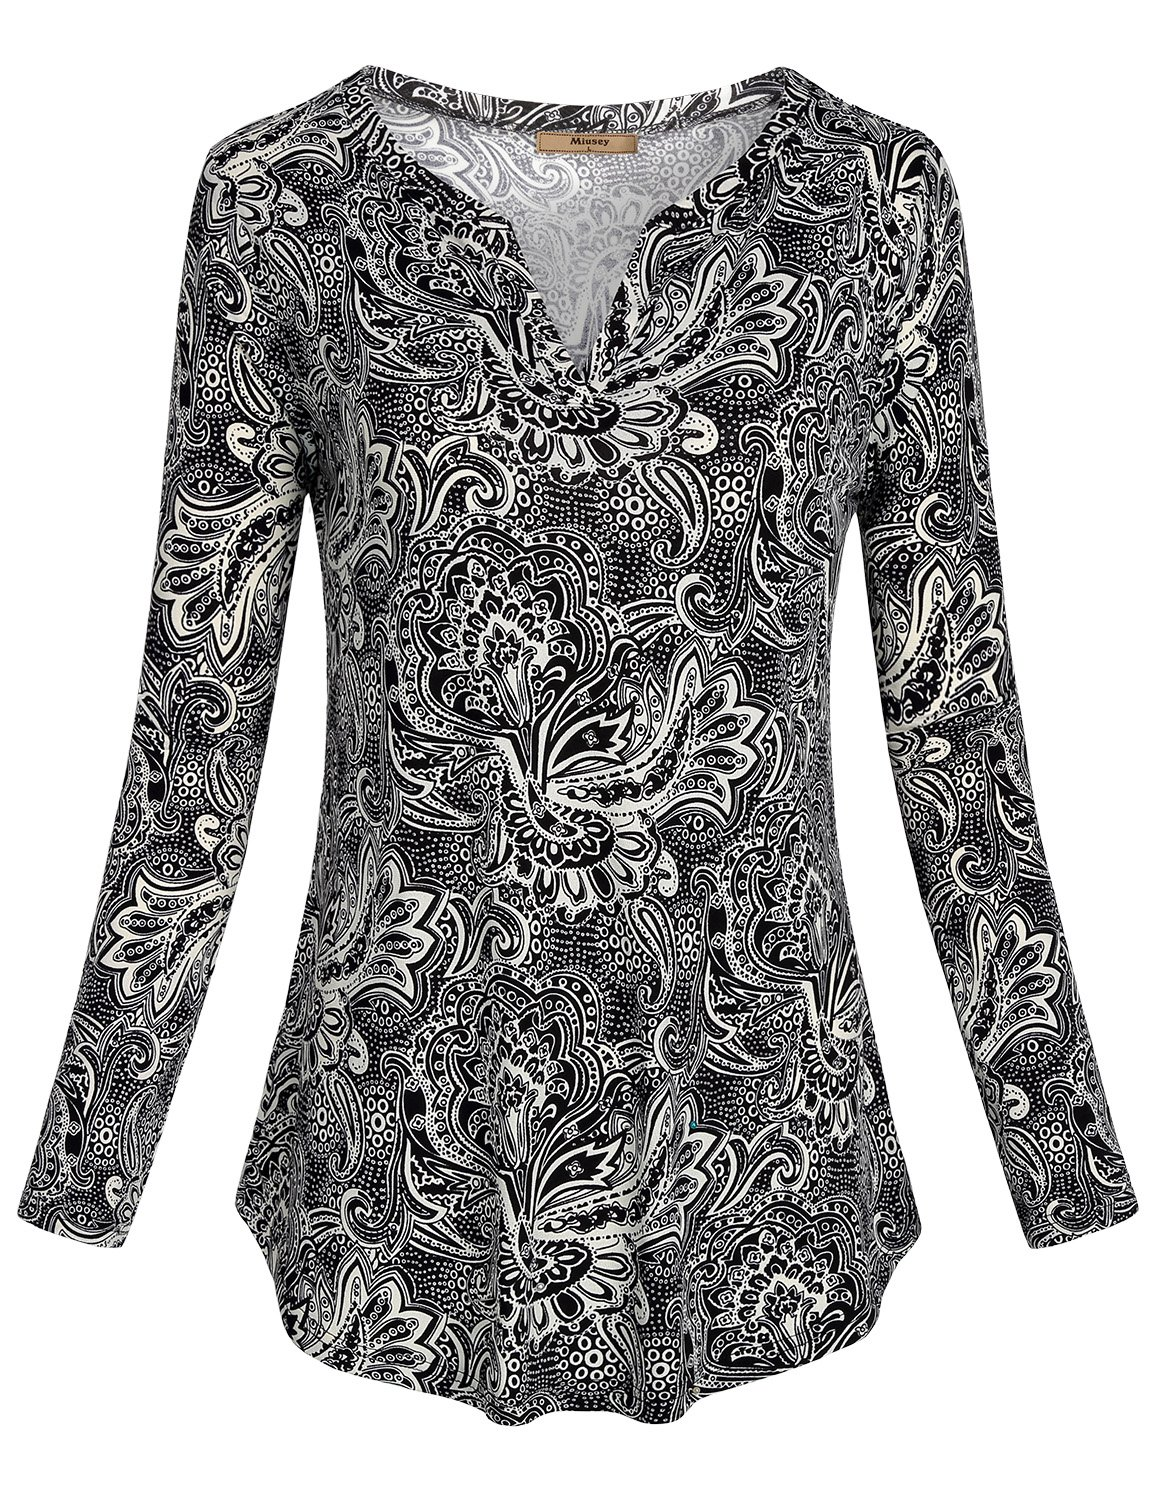 Miusey Henley Shirts for Women, Ladies Peasant Blouse Floral Paisley Pattern Polyster Tri-Blend Baggy Comfortable Weekday Travel Jerseys Sweatshirts Blouses Tunics Tops Black M